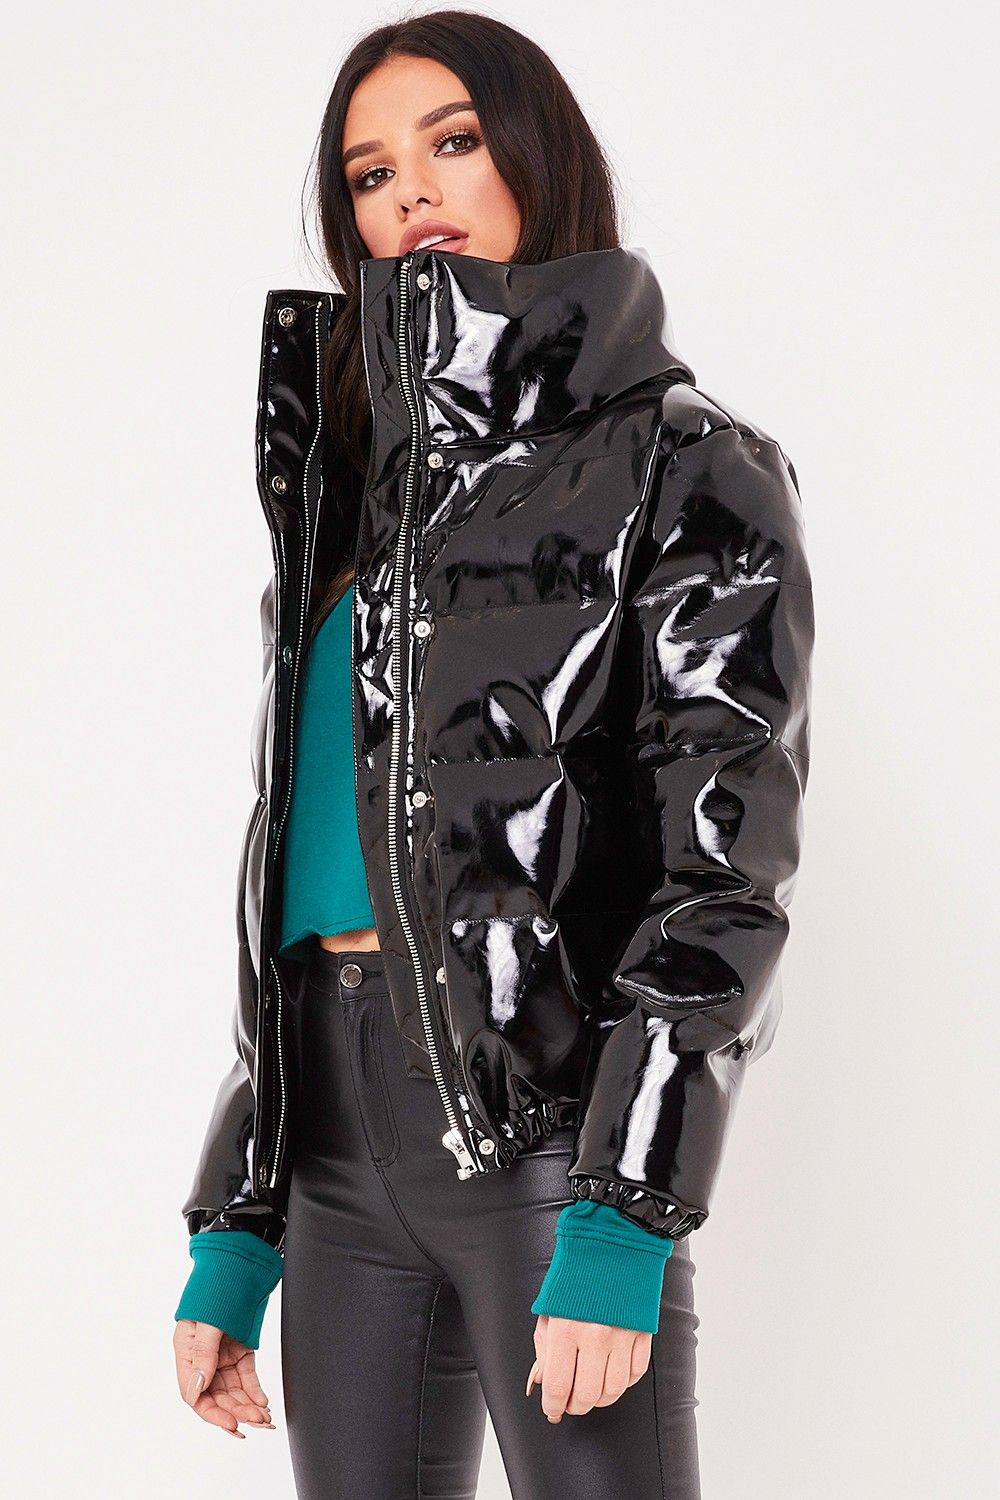 a3533abb9f Leah Black High Shine Vinyl Puffer Jacket in 2019 | f/dia/tv | Vinyl ...